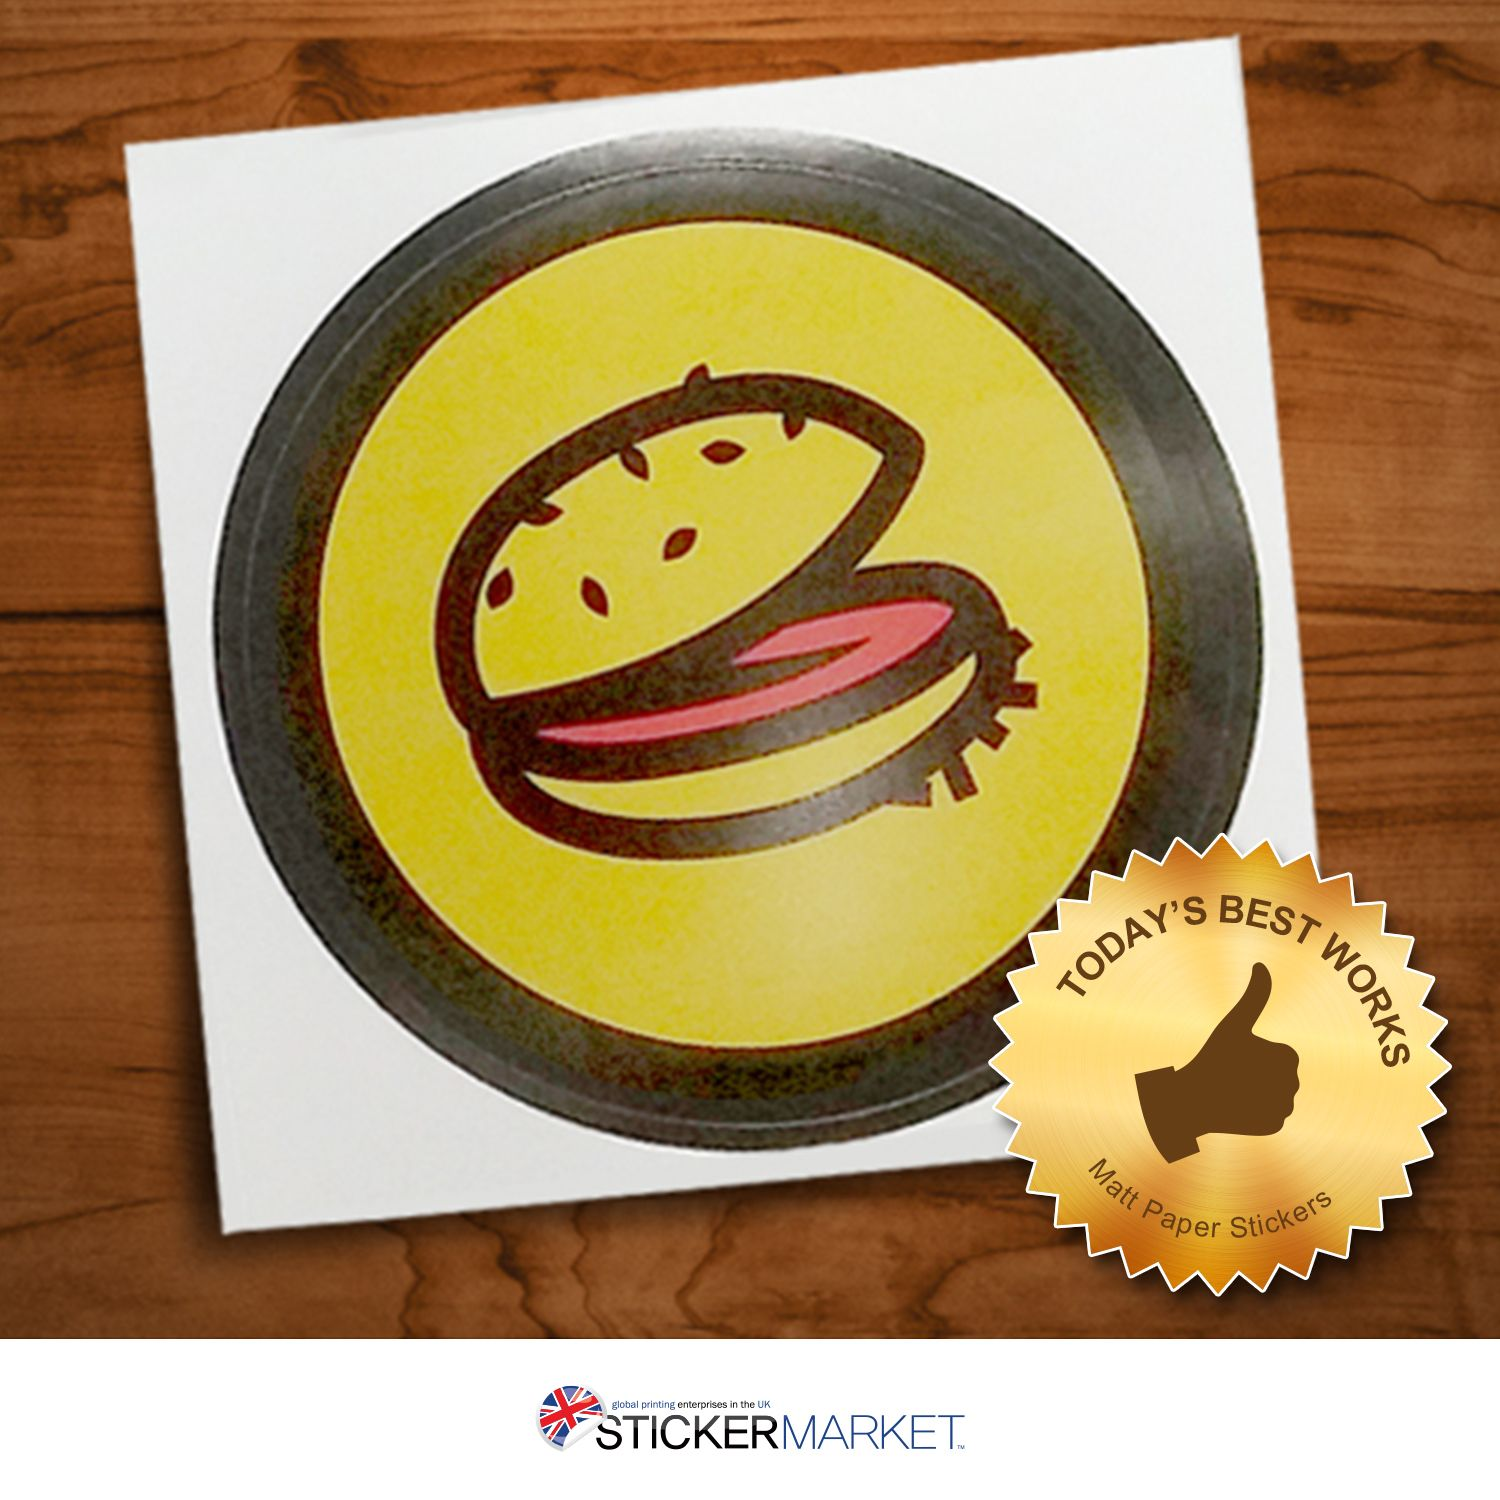 Matt Paper Food Stickers! Ideal for scrap booking, designs and collections.  We are on Great STICKER SALE. Order now and get free 1000 stickers. Get quote now - http://goo.gl/oyIfF7  #food #hungry #miniburger #burger #mattpaperstickers #mattstickers #paperstickers #matt #stickers #labels #greatstickersale #sale #branding #customstickers #customlabels #stickerprinting #stickershop #onlineshop #online #stickermarket #cheapstickers #freedelivery #freeartwork #UKstickers #Londonstickers #UK…